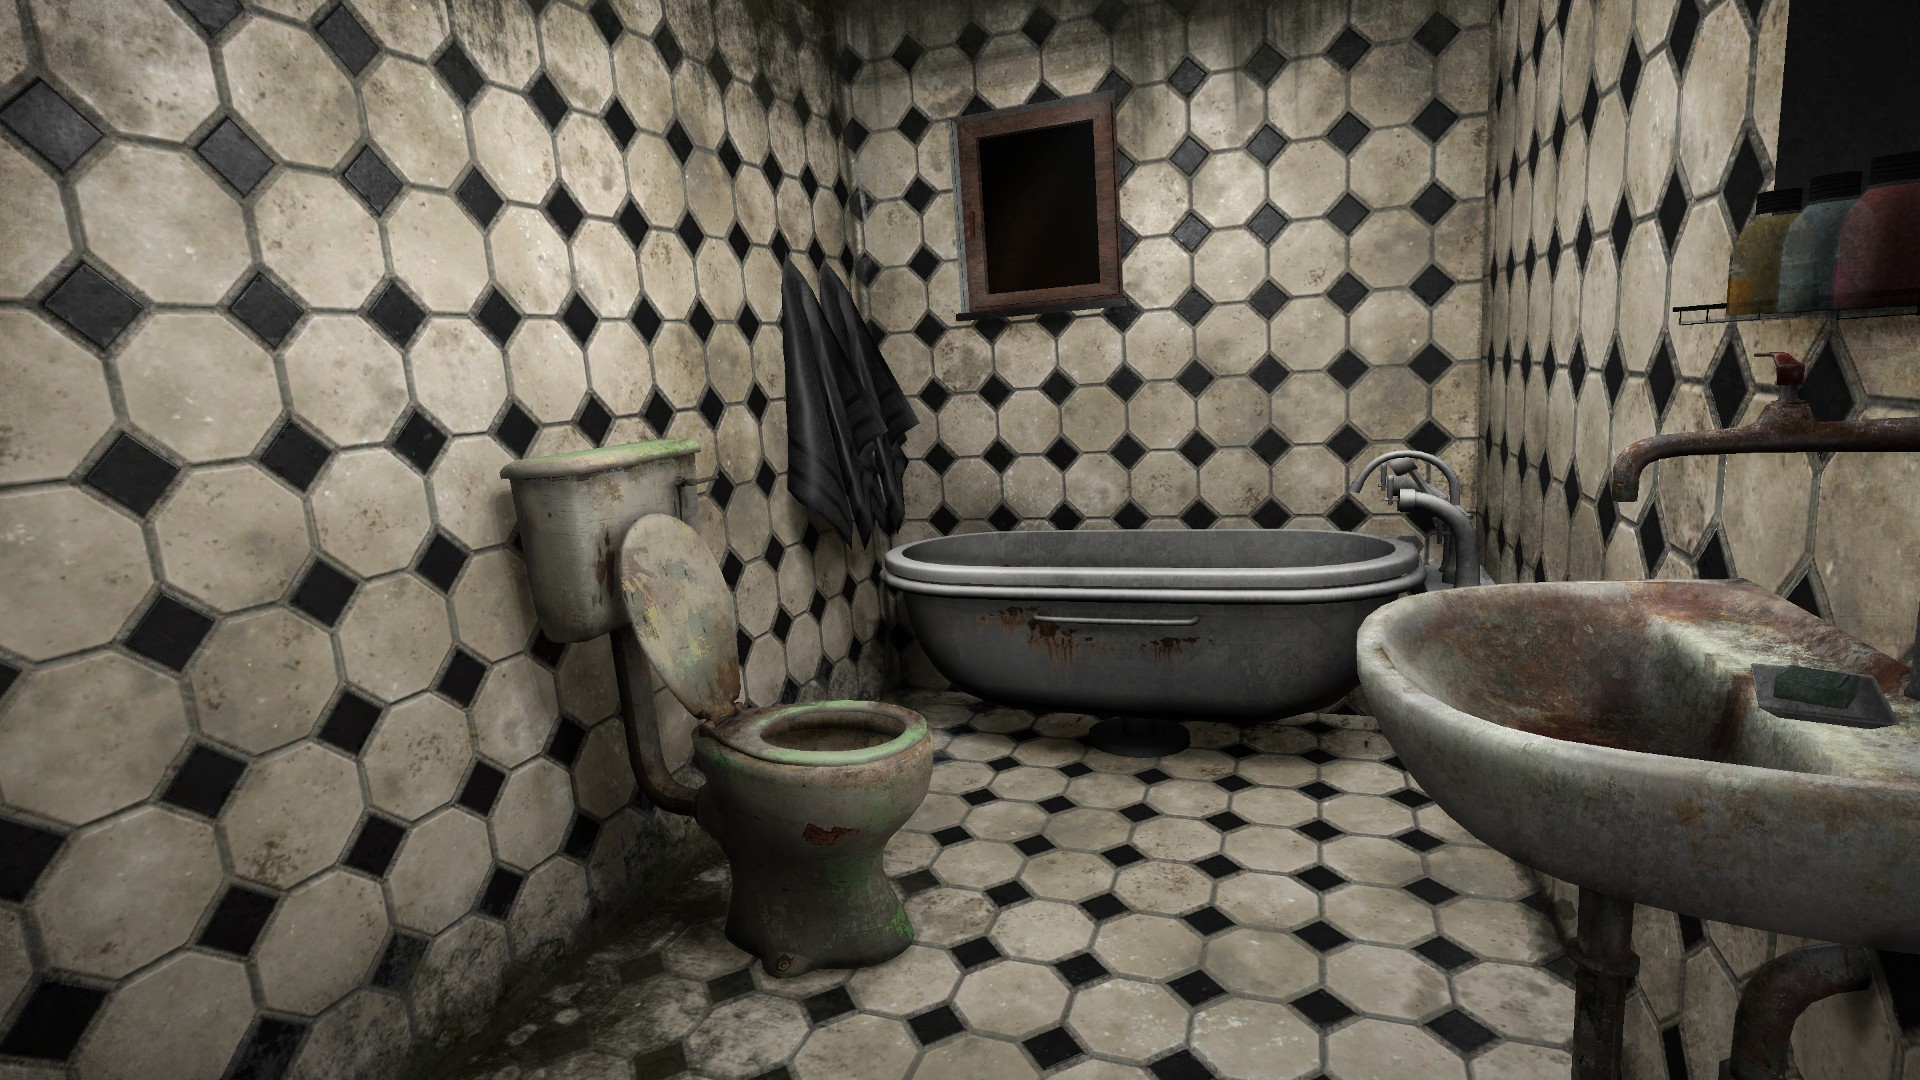 Kaufen House Flipper Steam